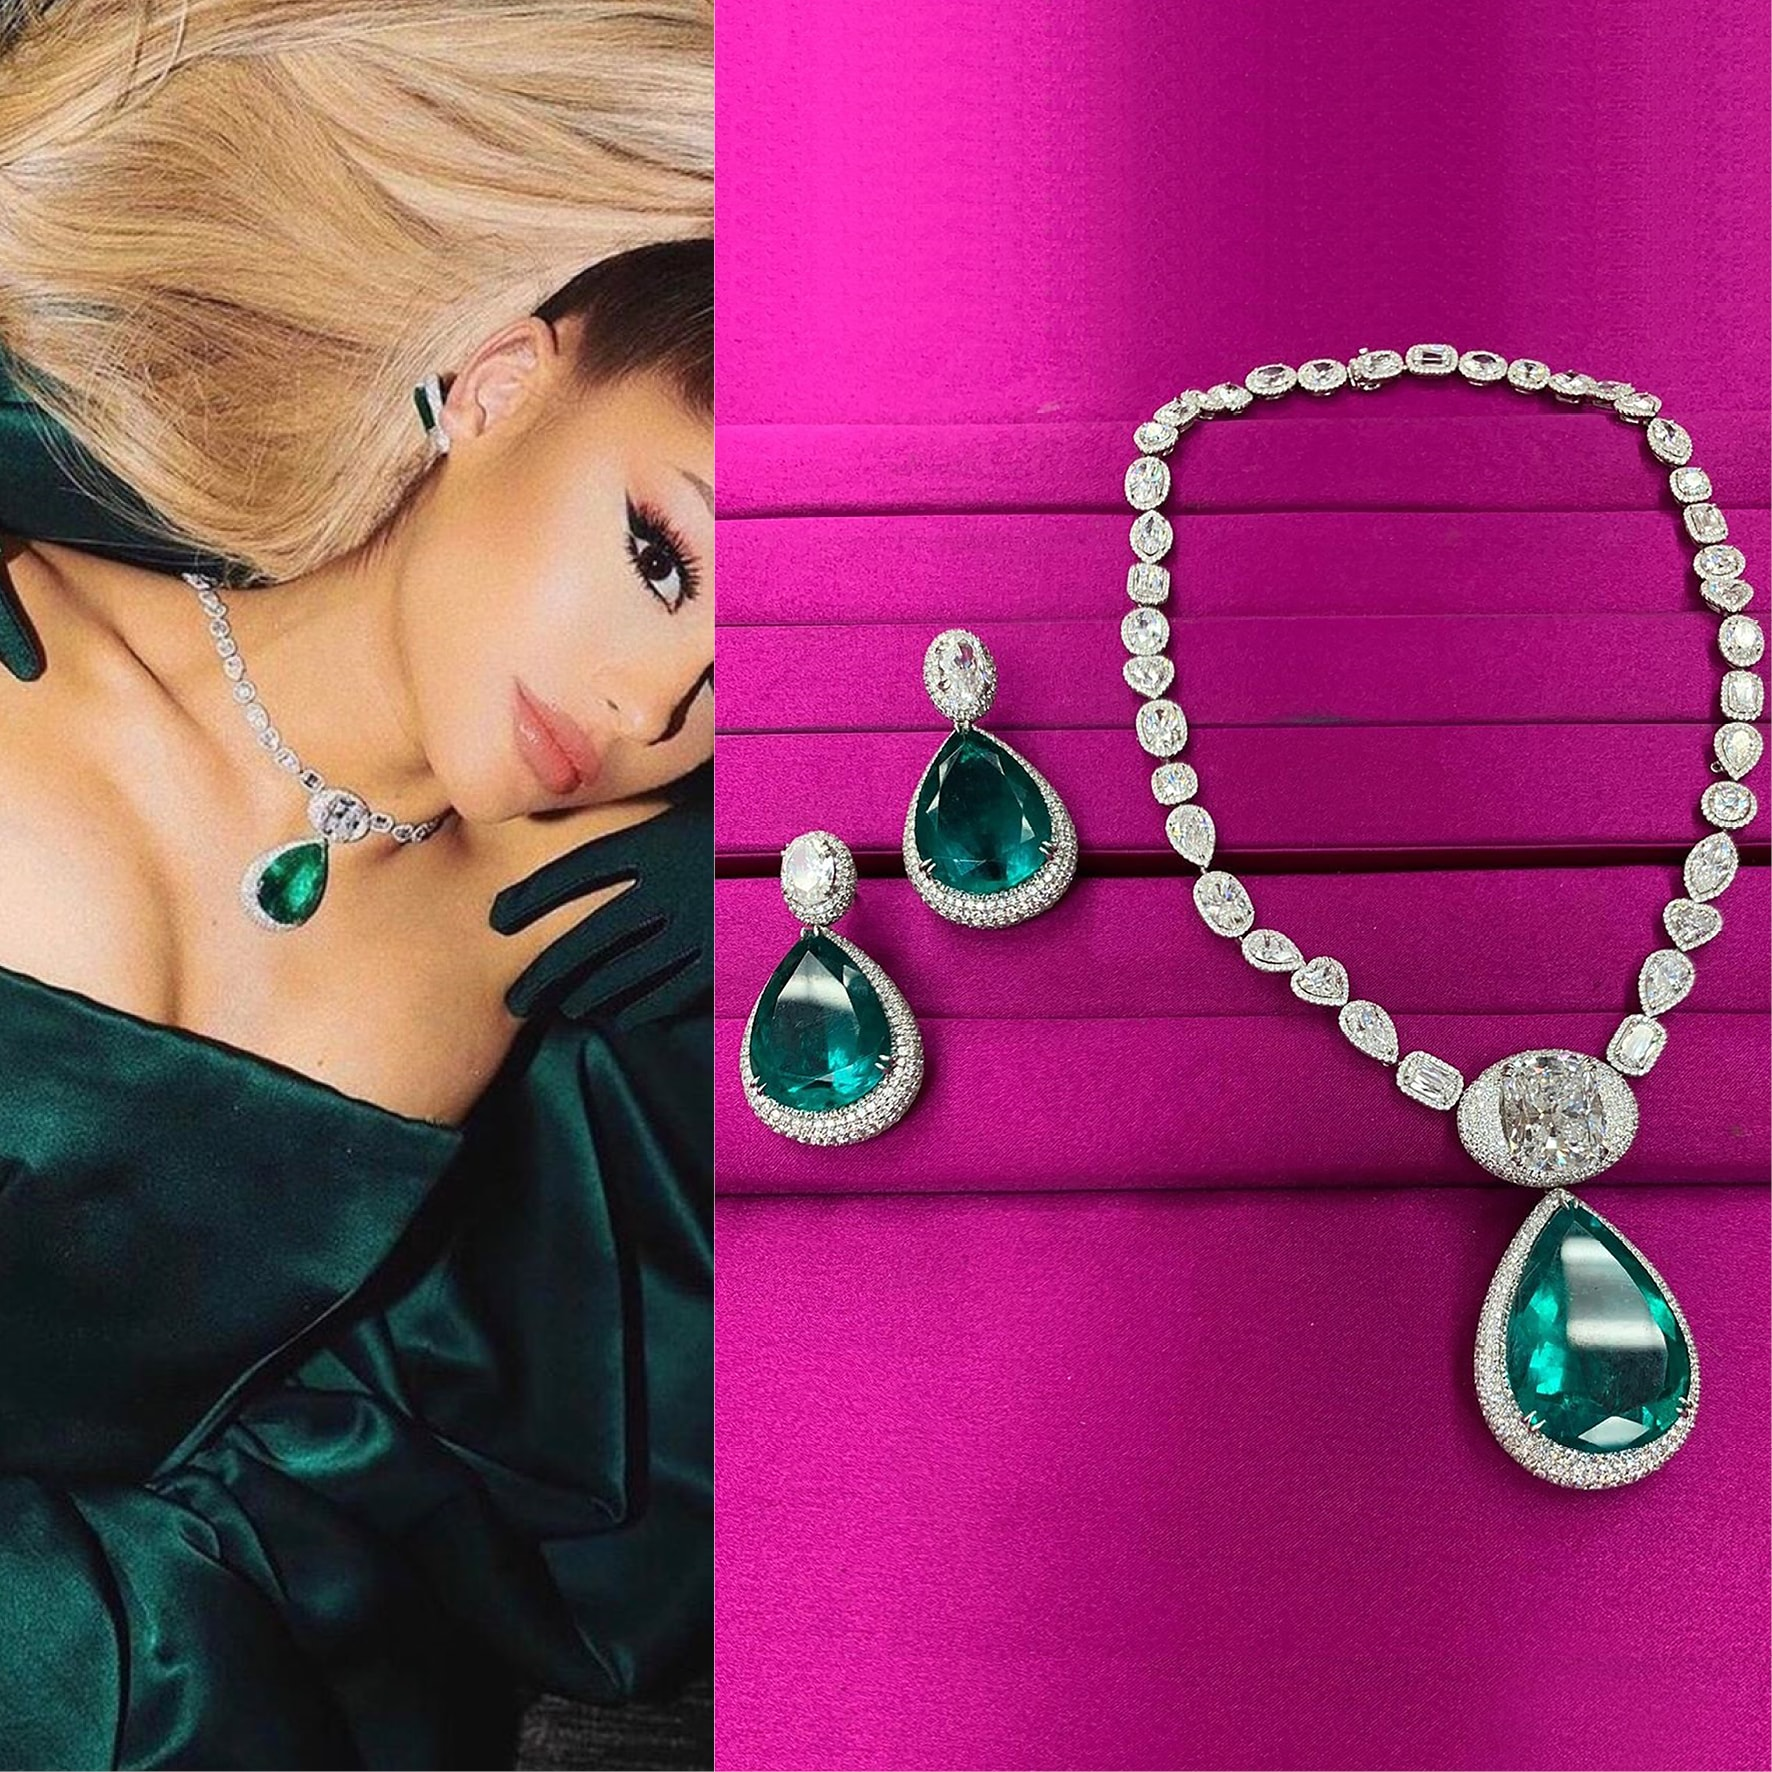 Ariana Grande picked up a voluptuous emerald and diamond earrings